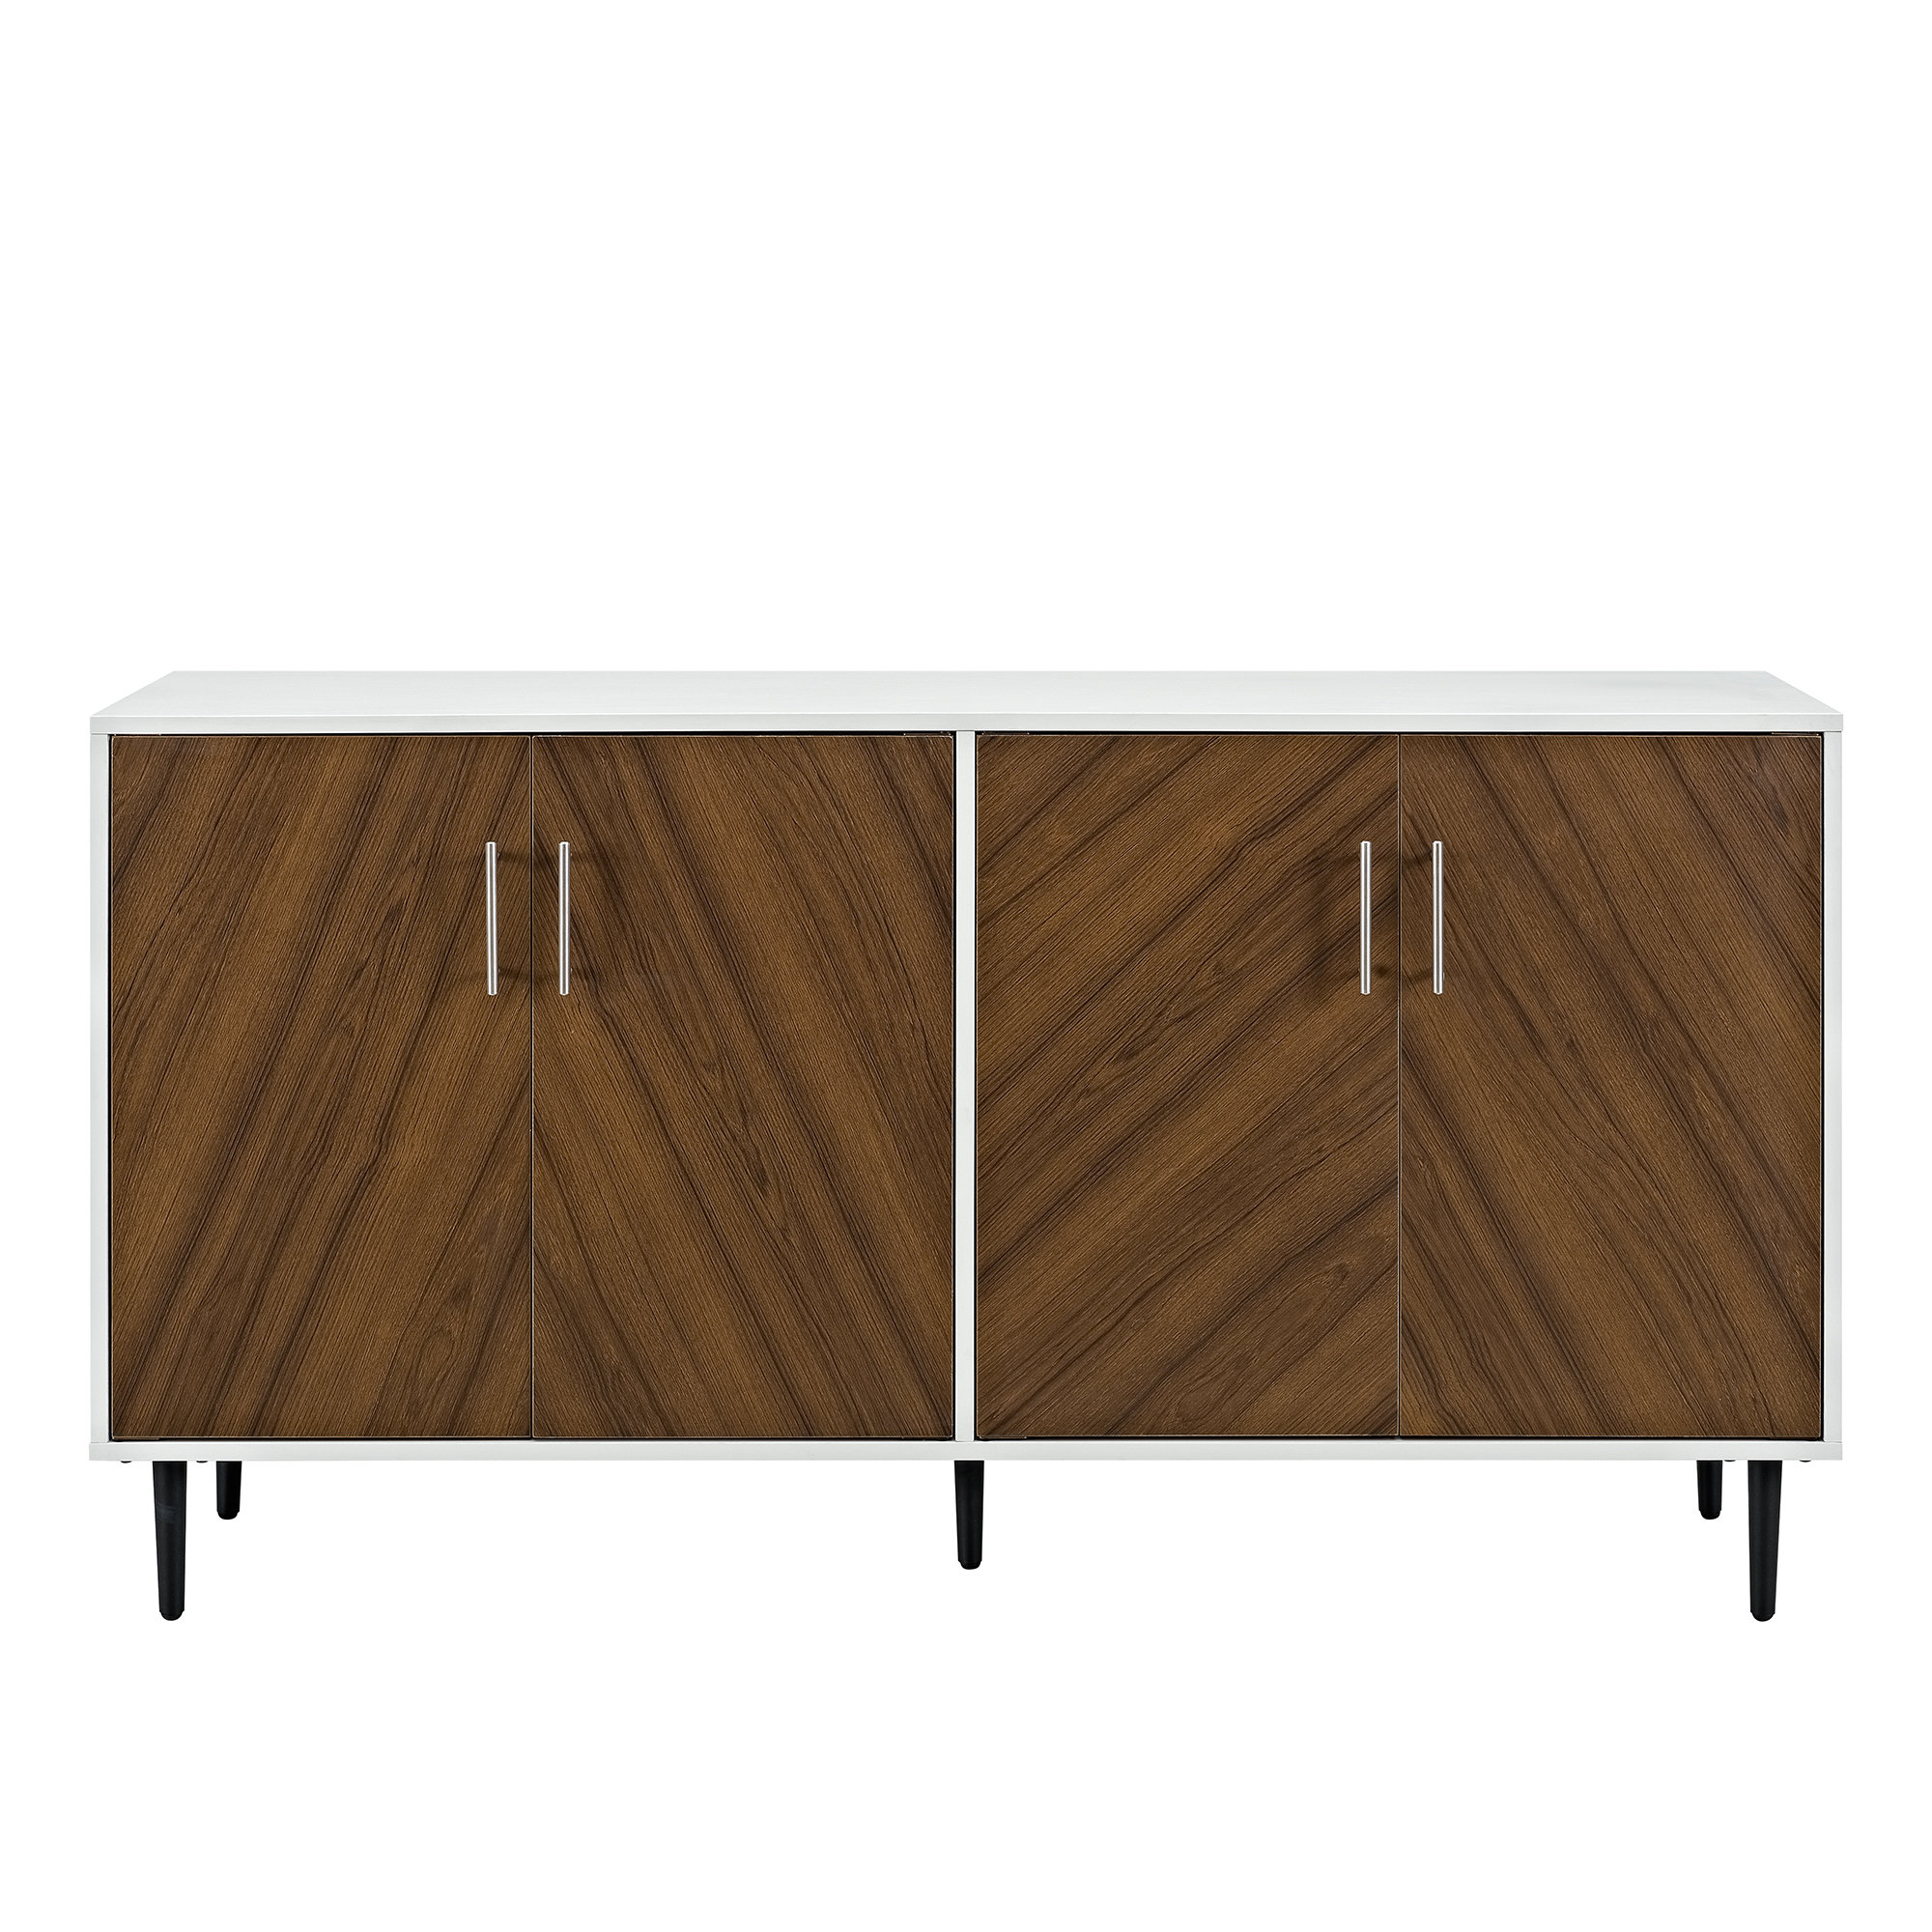 Modern & Contemporary Colorful Credenza | Allmodern for Lainey Credenzas (Image 18 of 30)